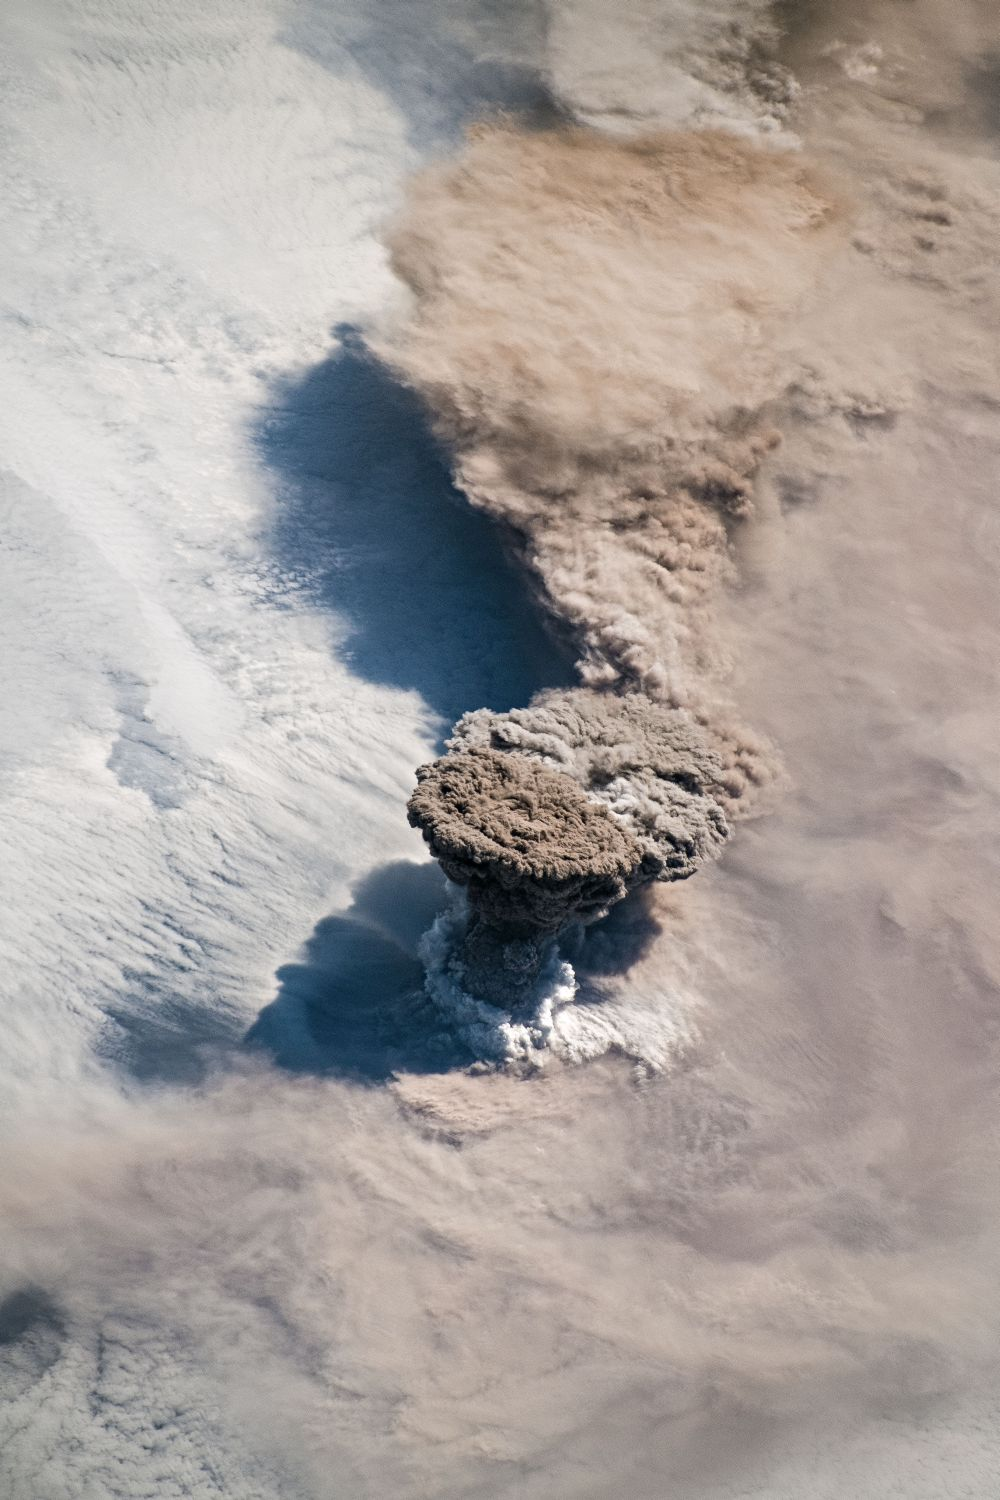 Eruption of the Raikoke Volcano, Seen From Area